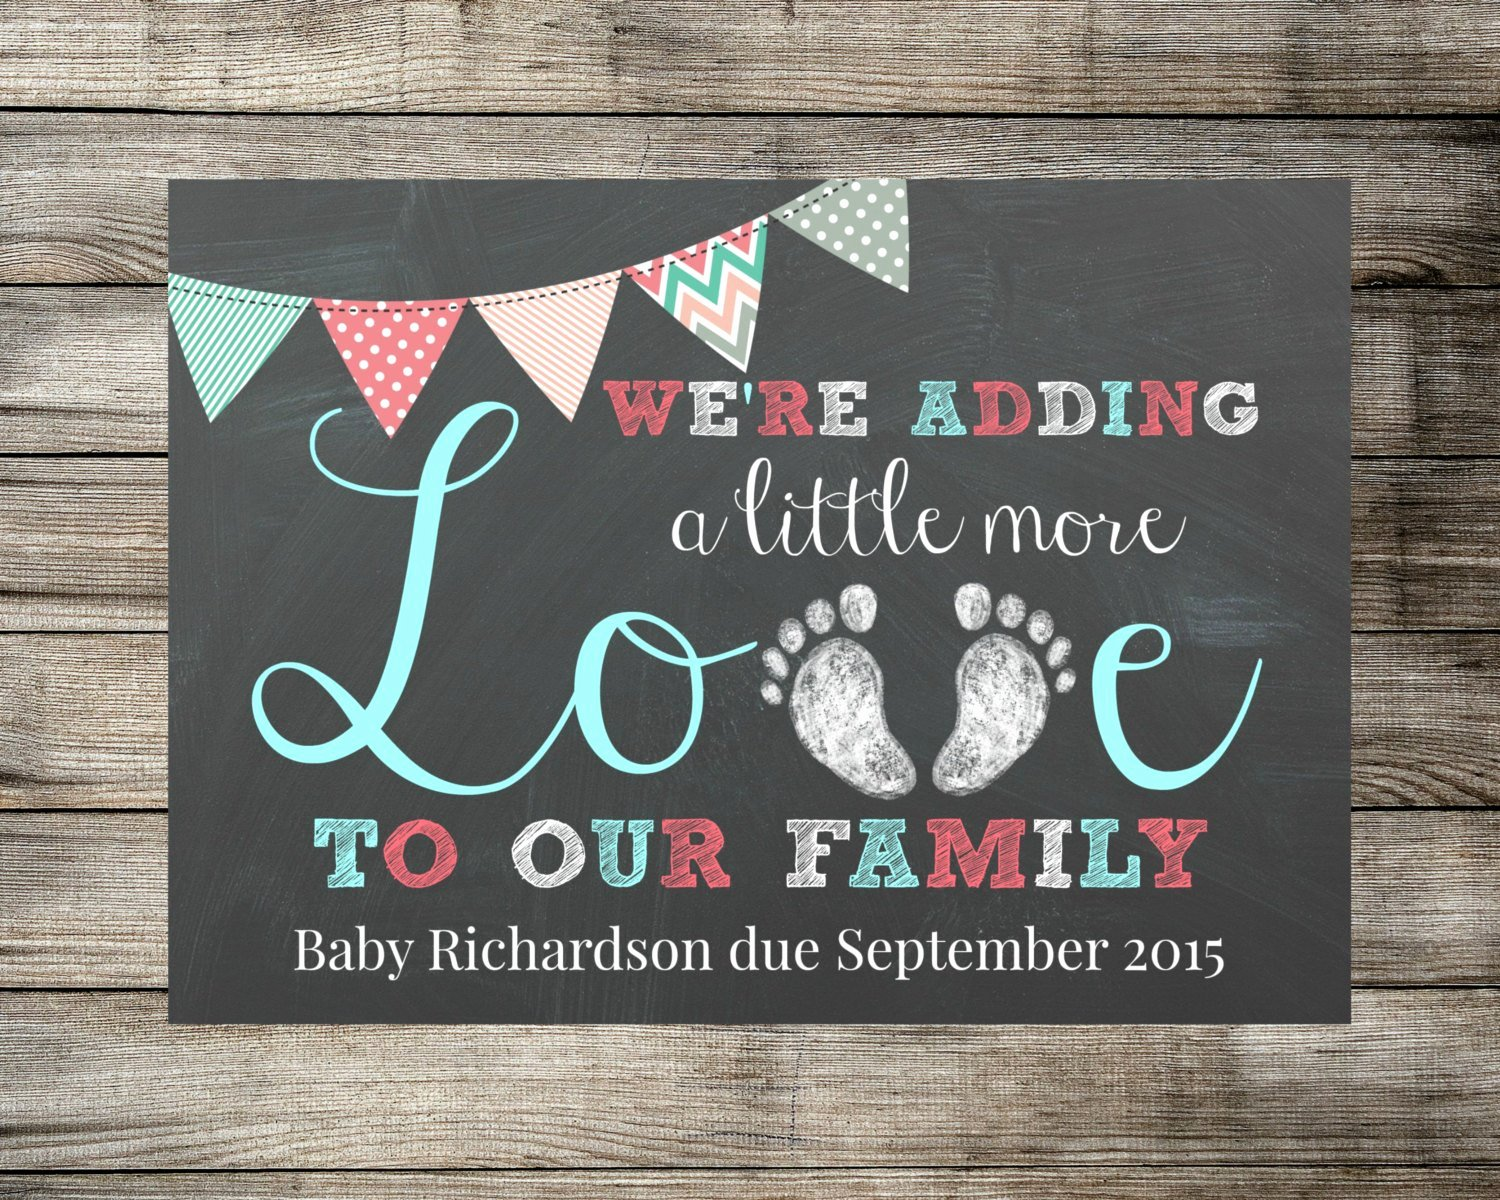 Free Pregnancy Announcement Template Beautiful Baby Pregnancy Announcement We Re Adding A Little More